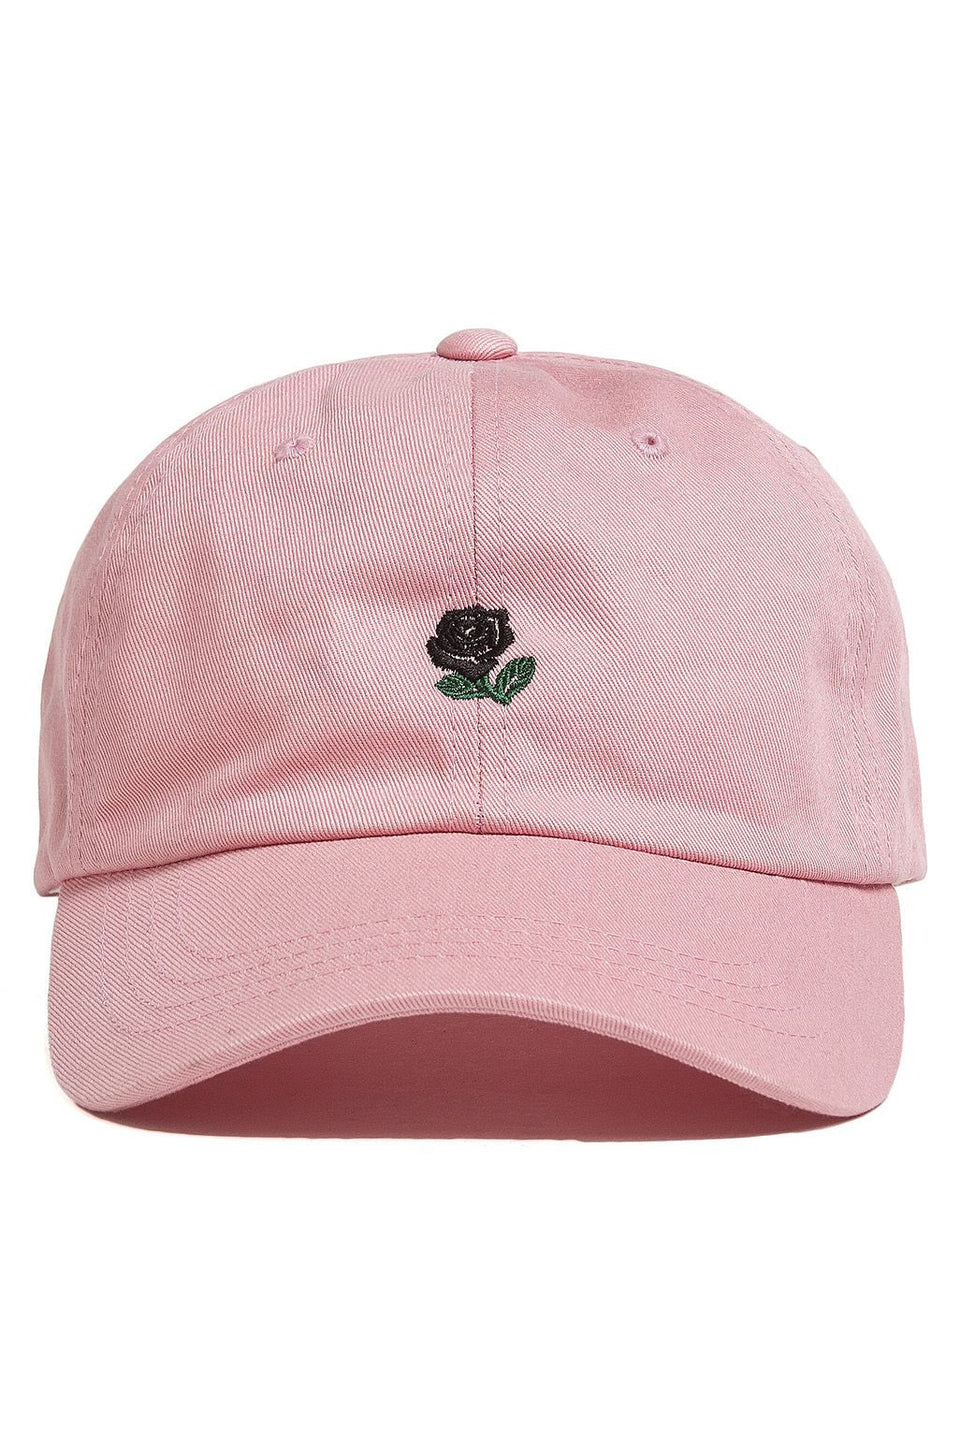 Rose Dad Hat Rose Dad Hat ... 254faa7f7b9